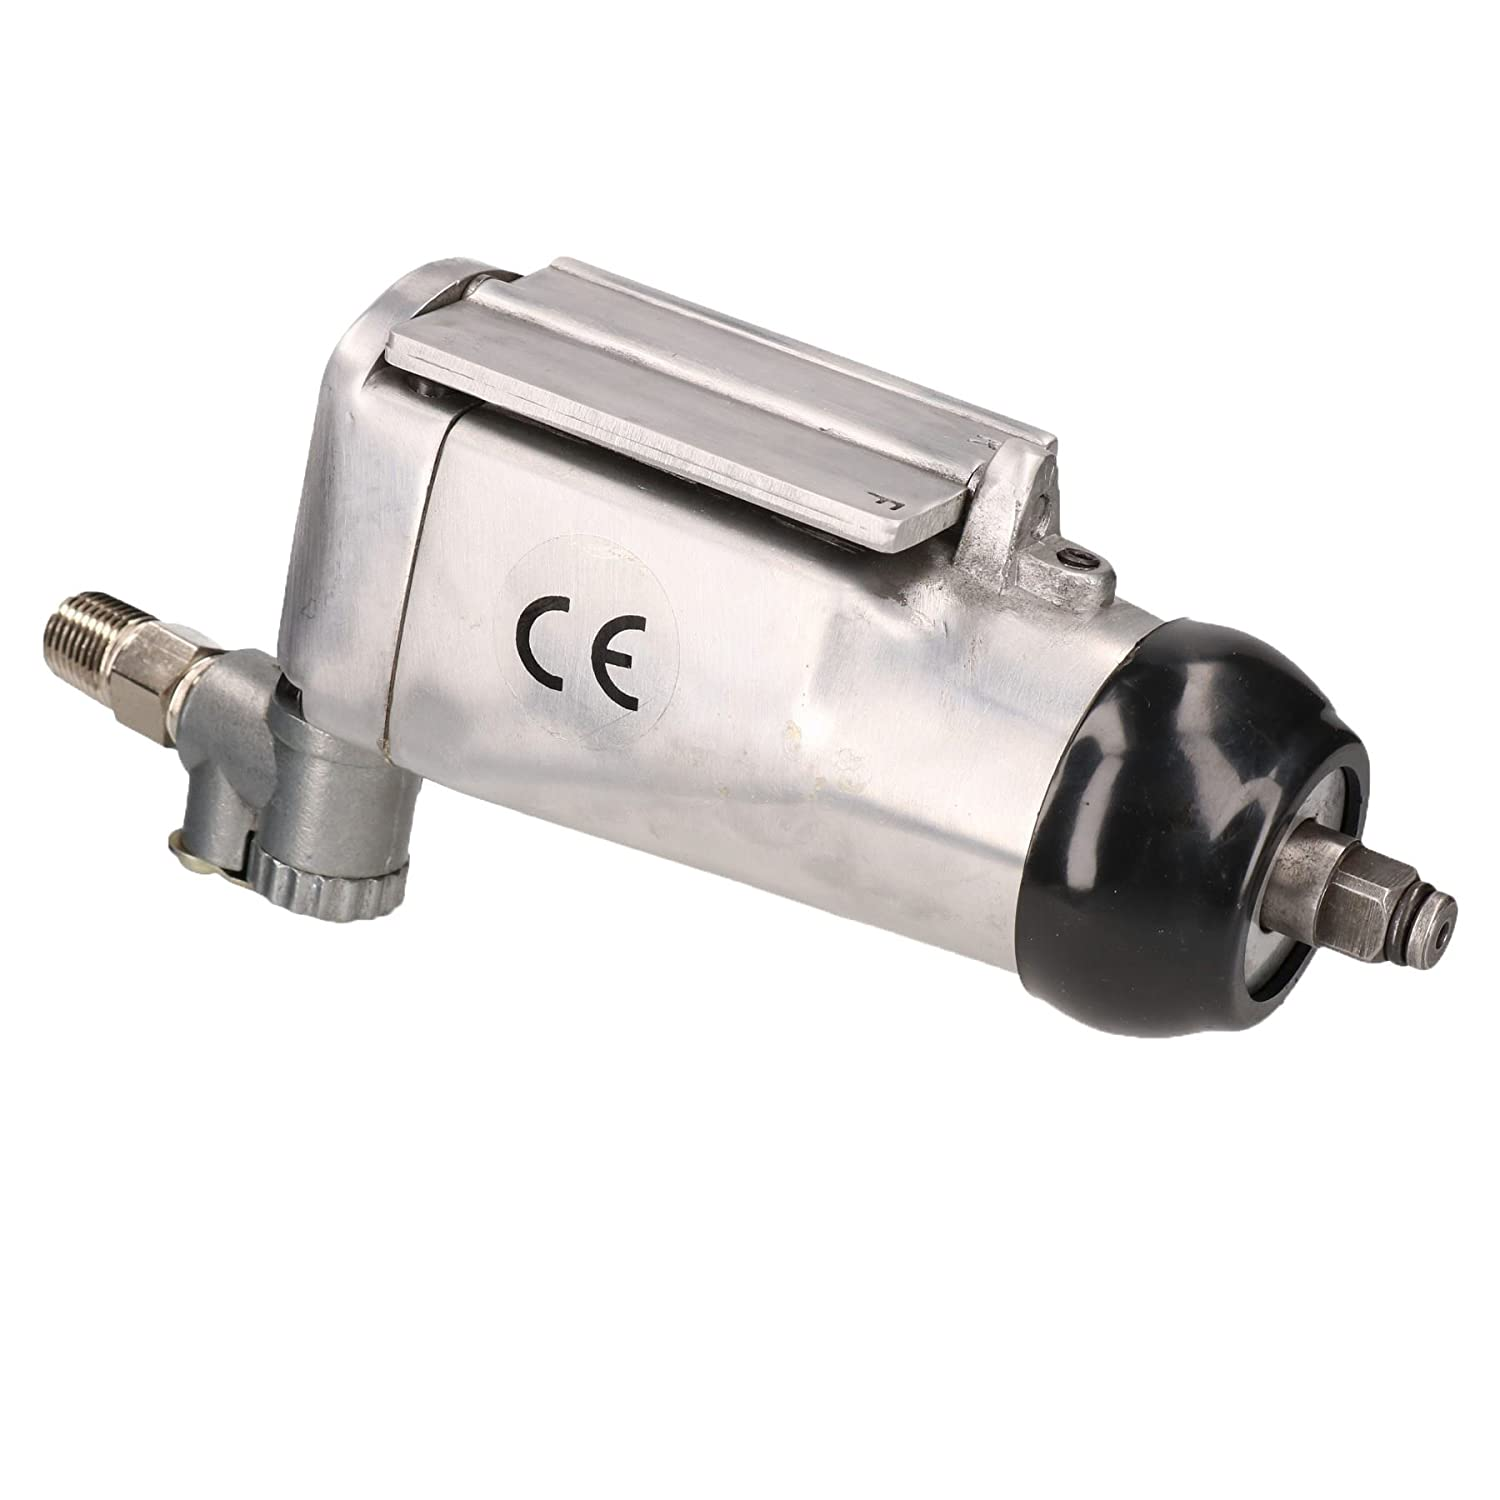 Air Impact Wrench / Gun / Butterfly gun 3/8 drive by BERGEN AT006 AB Tools